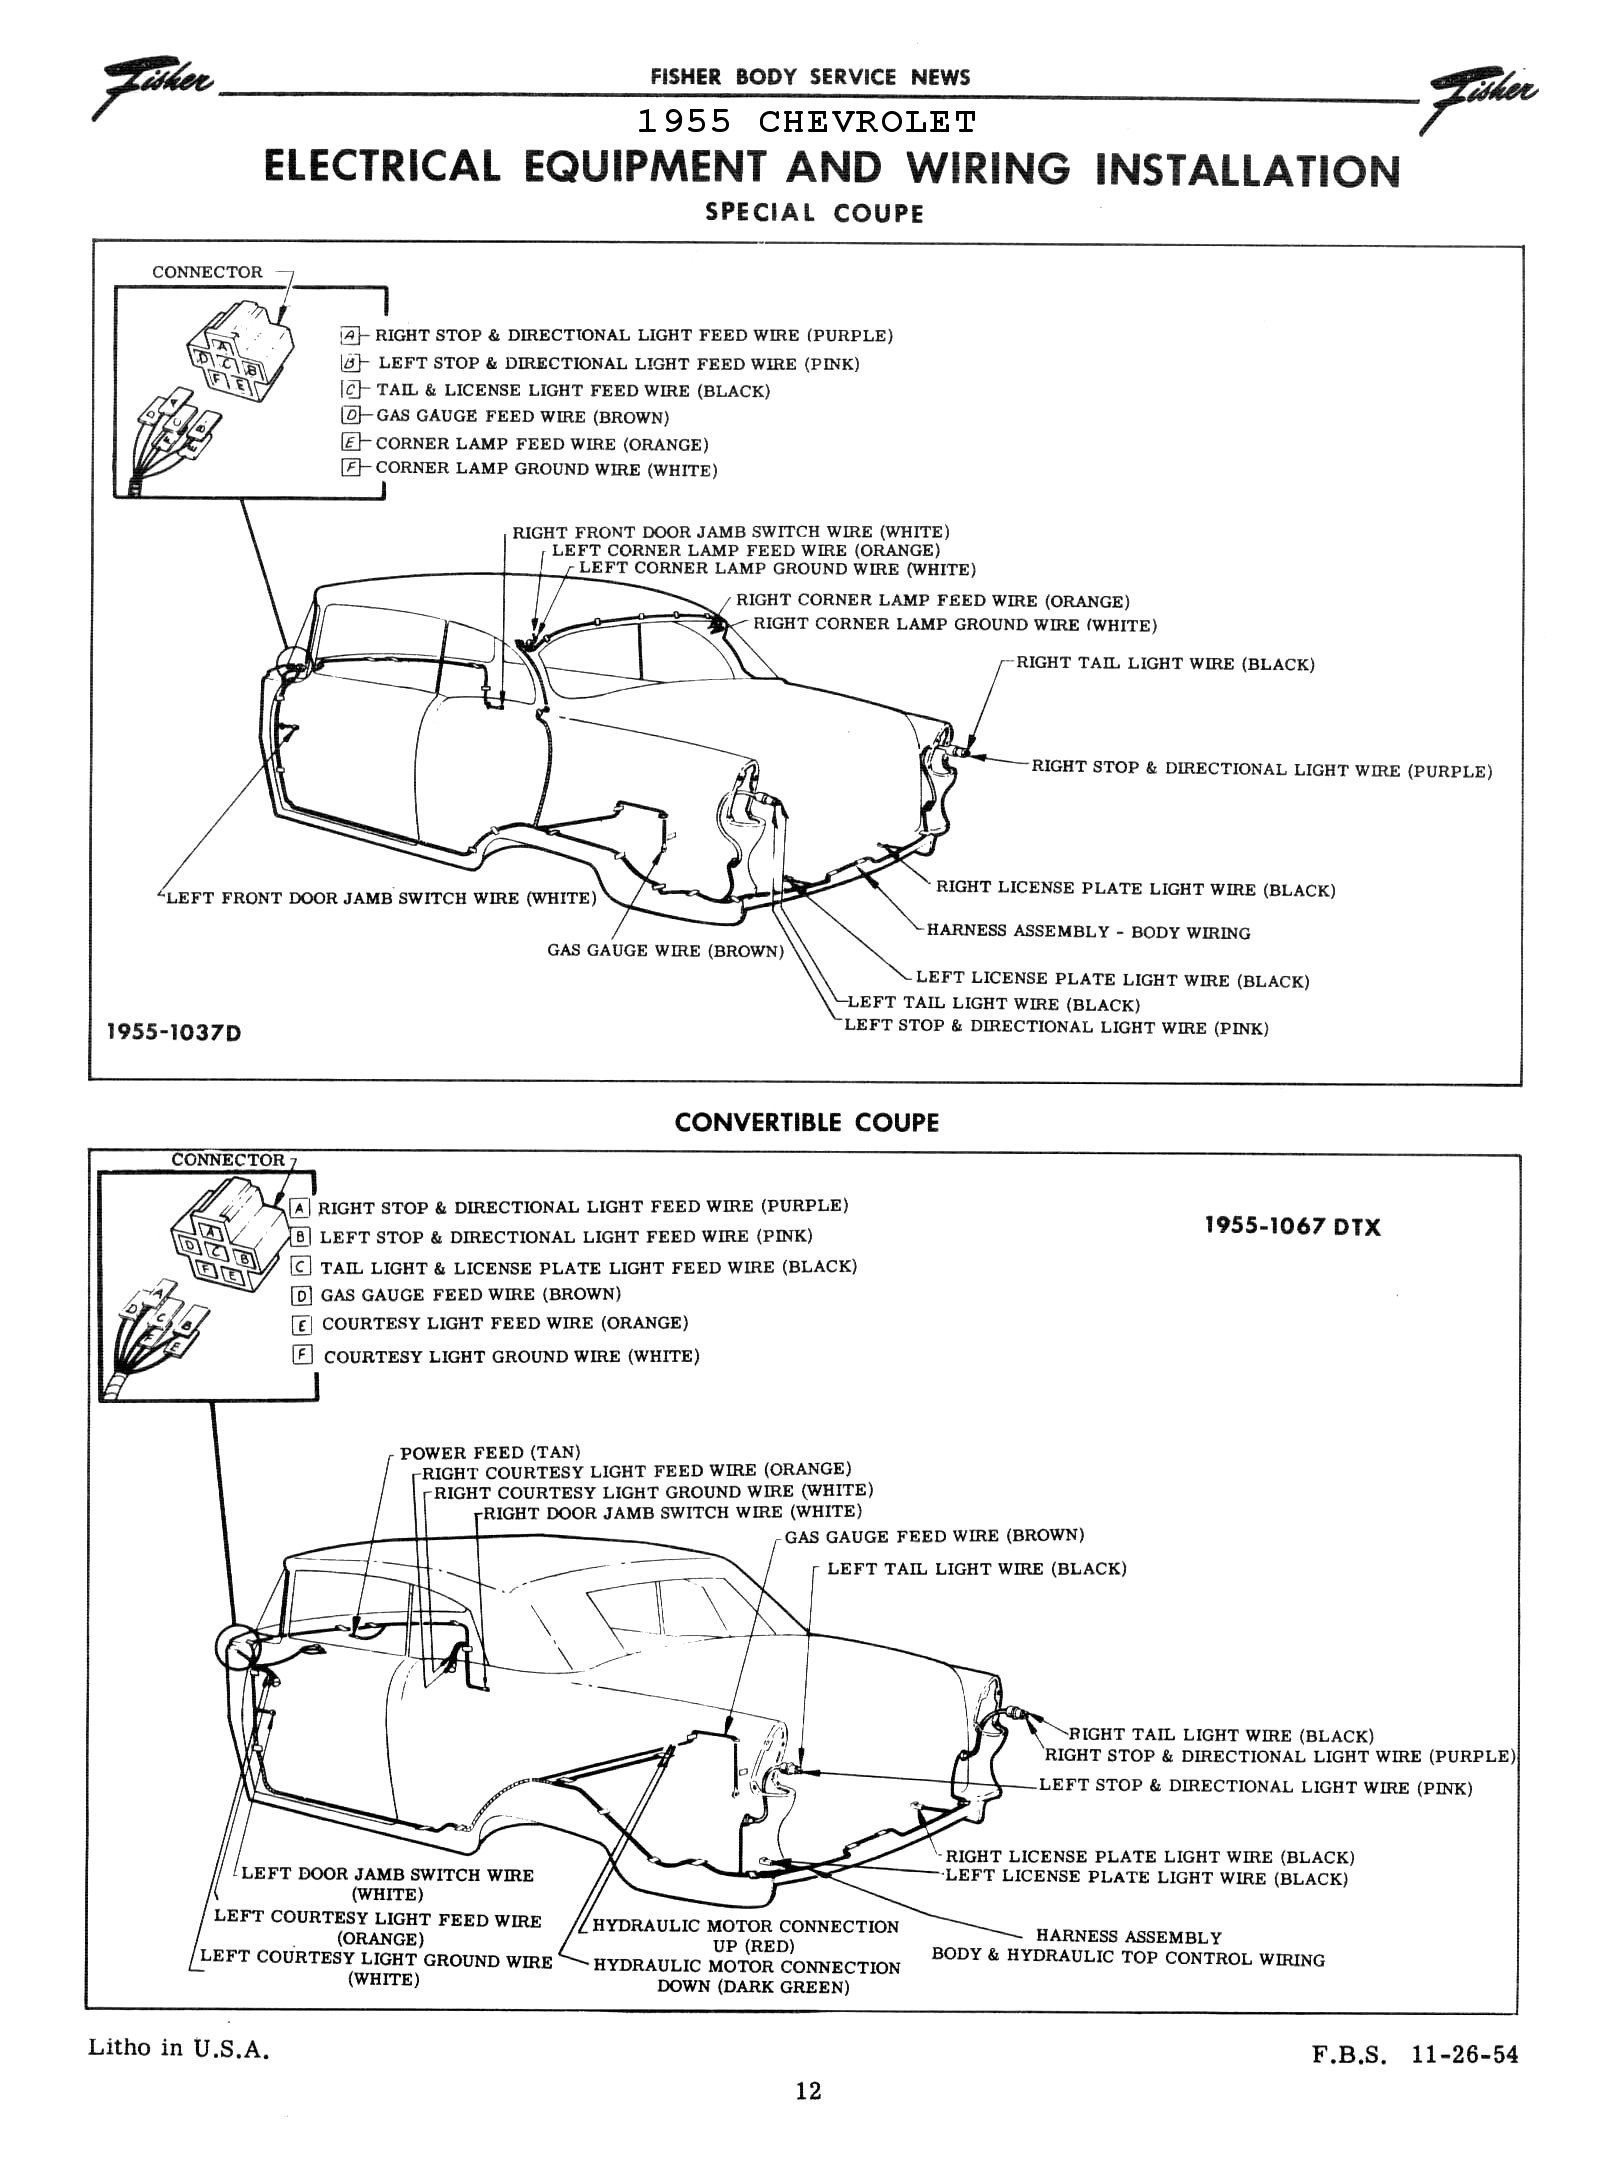 55 chevy pickup wiring diagram 1955 chevrolet wiring diagram - data set #9